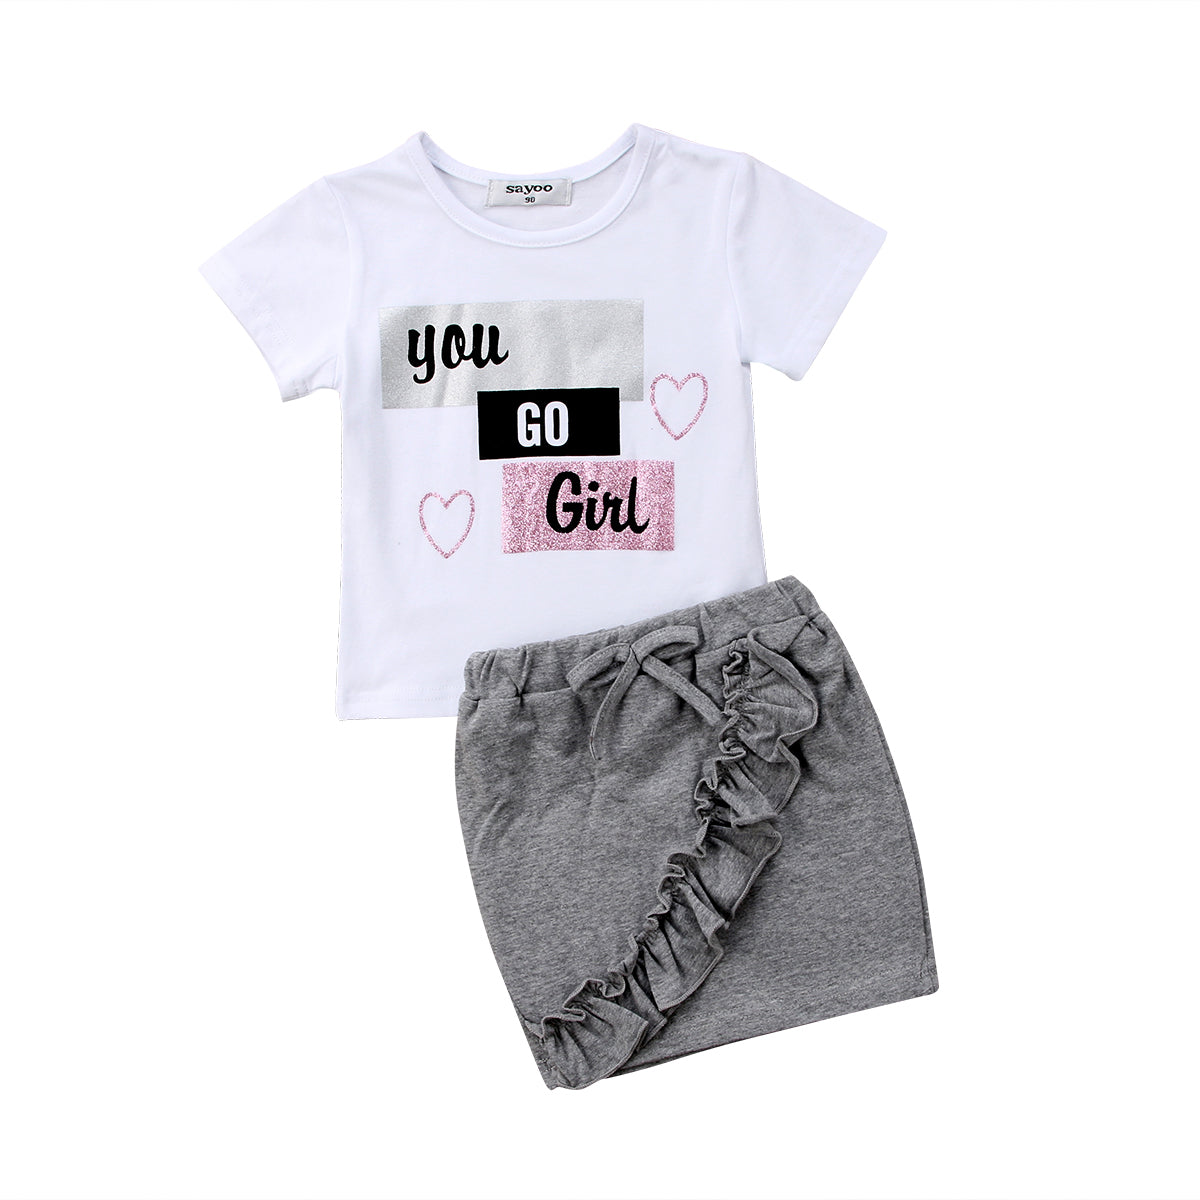 fcbba3a70 You Go Girl 2PC Set – The Tiny Hipster Co